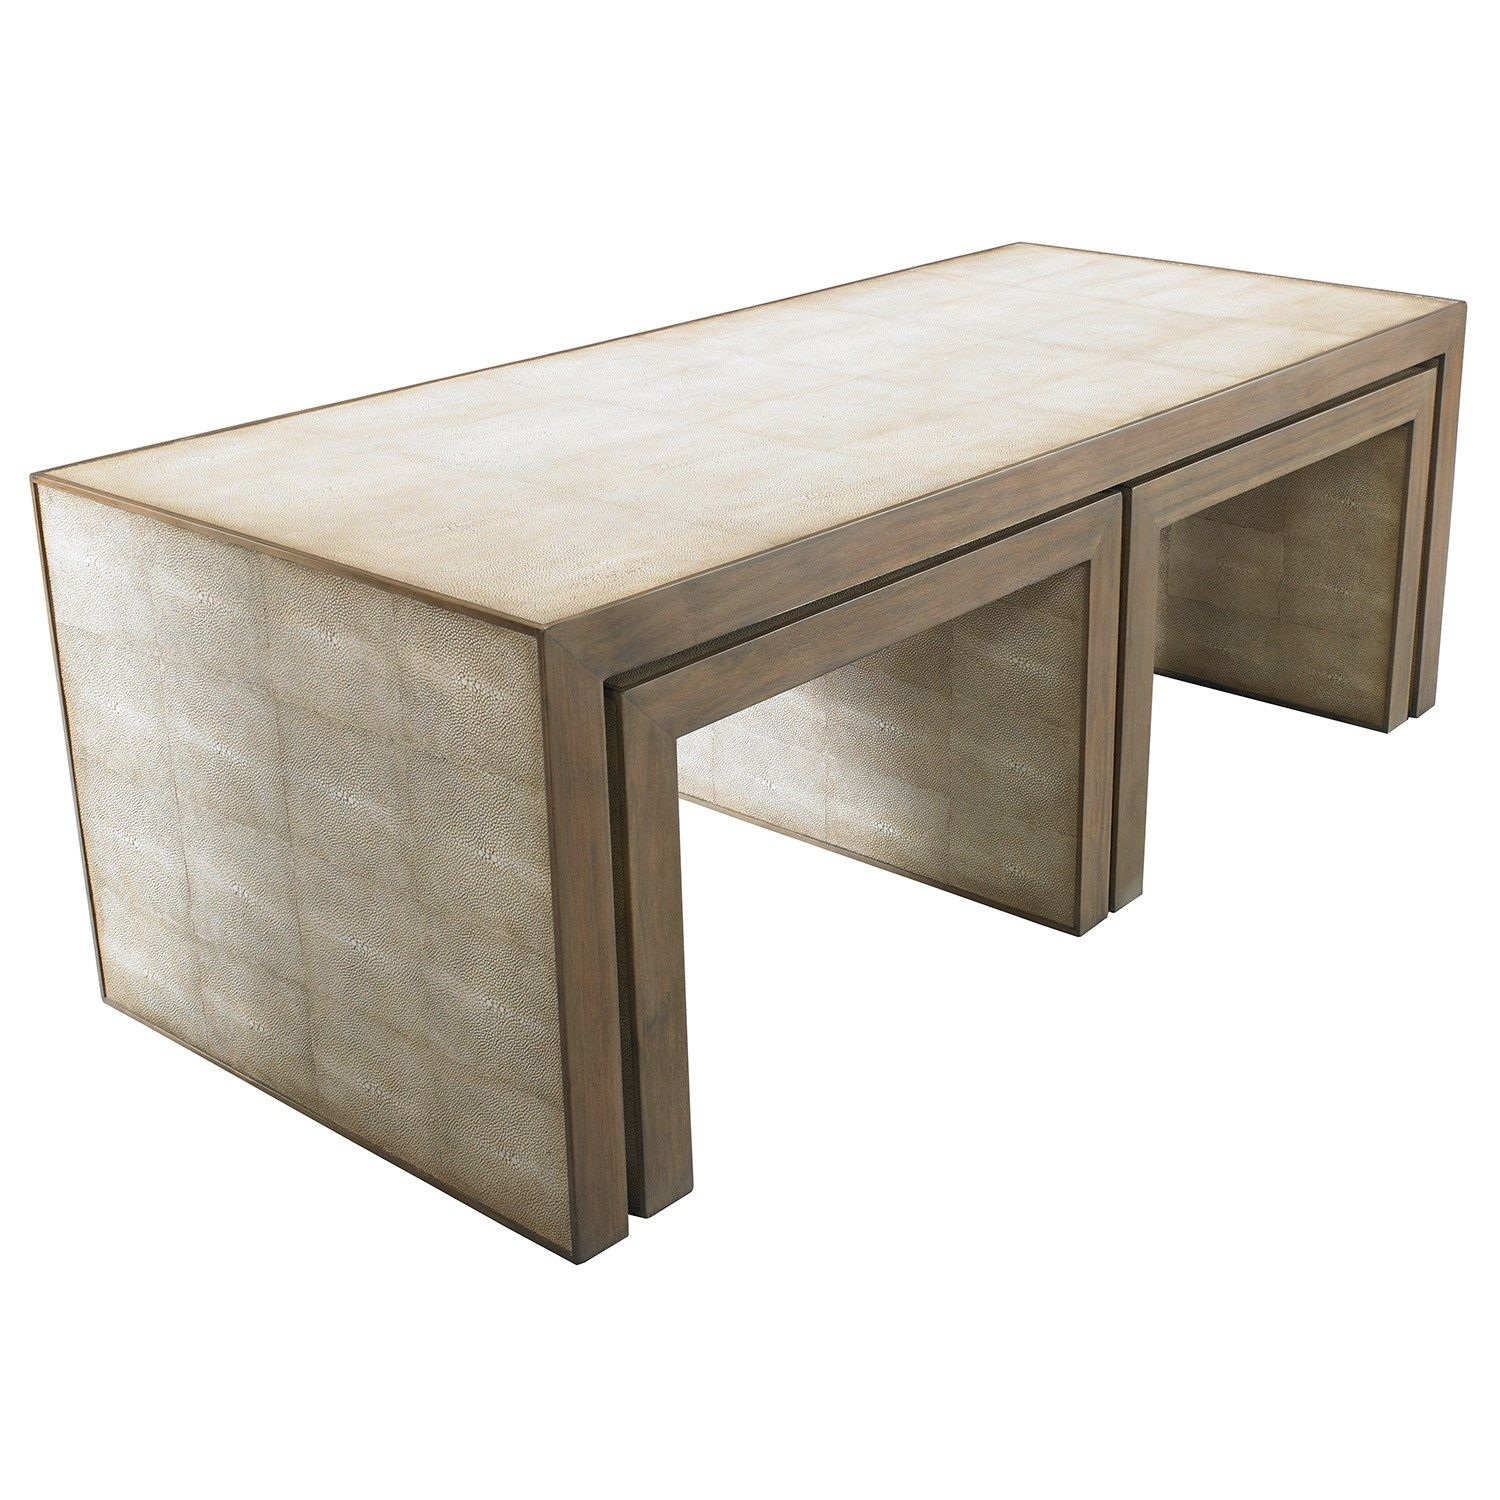 shagreen wrapped with wood trim table